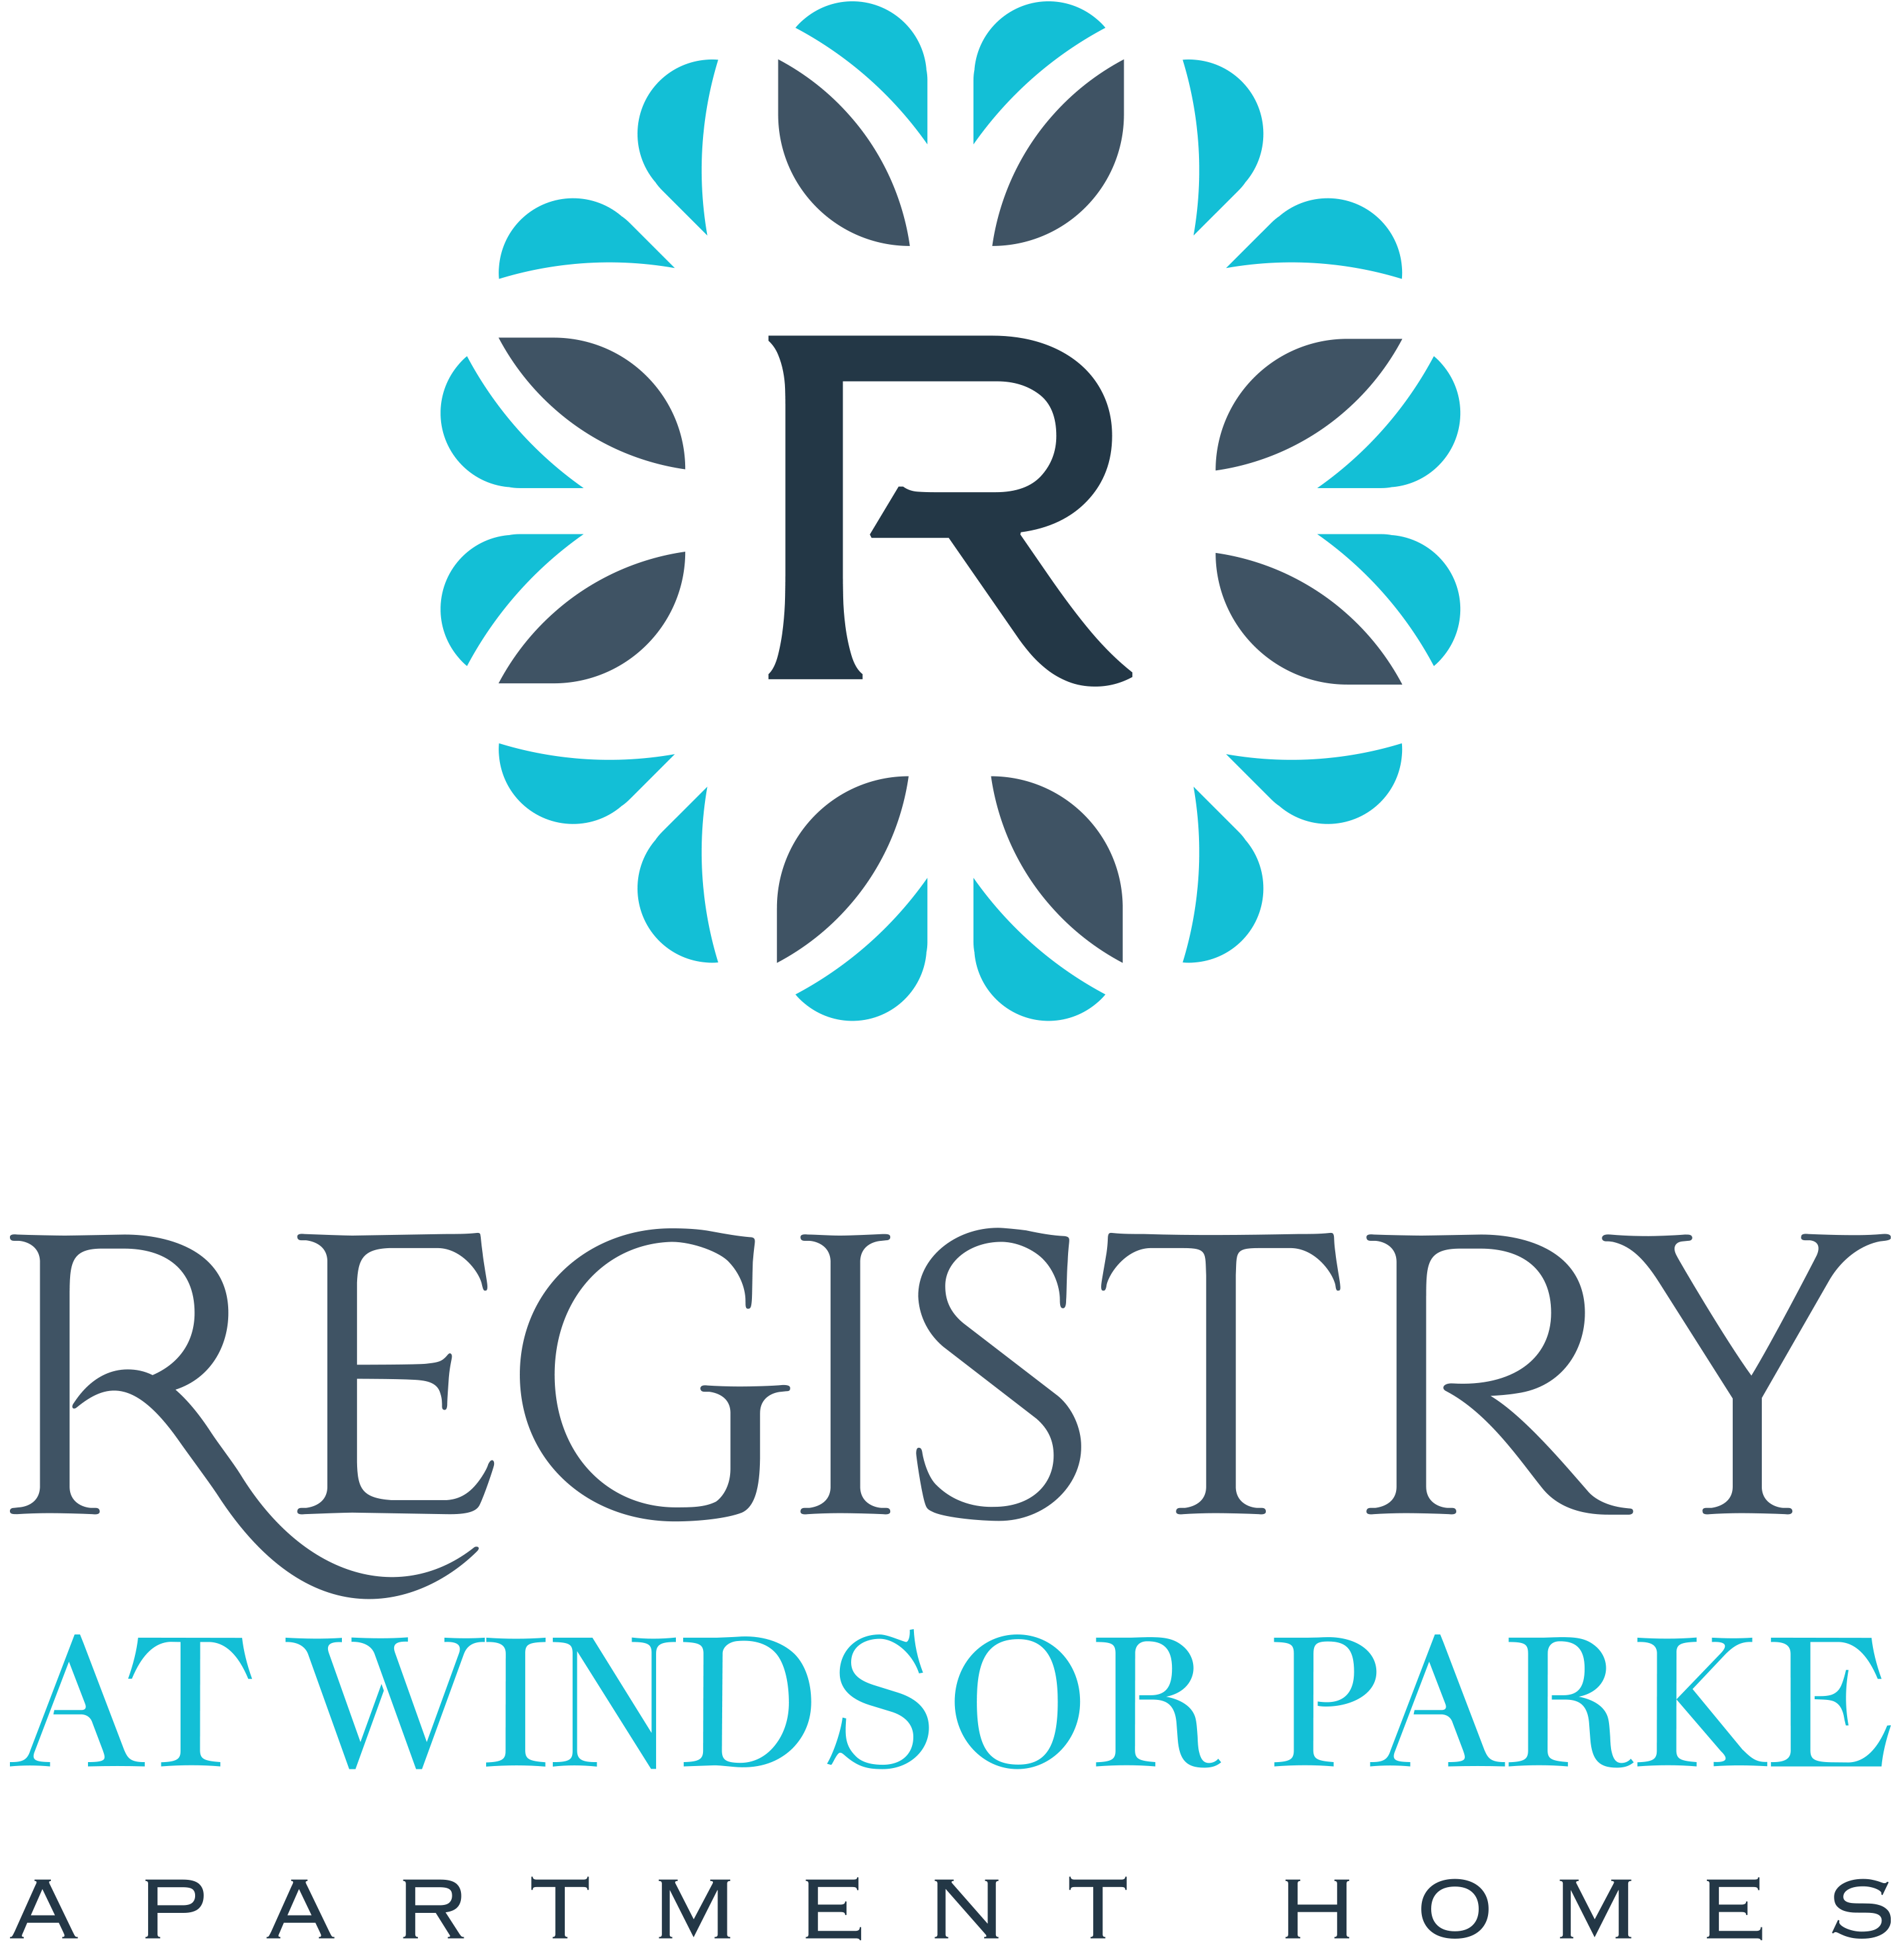 Registry at Windsor Parke Logo